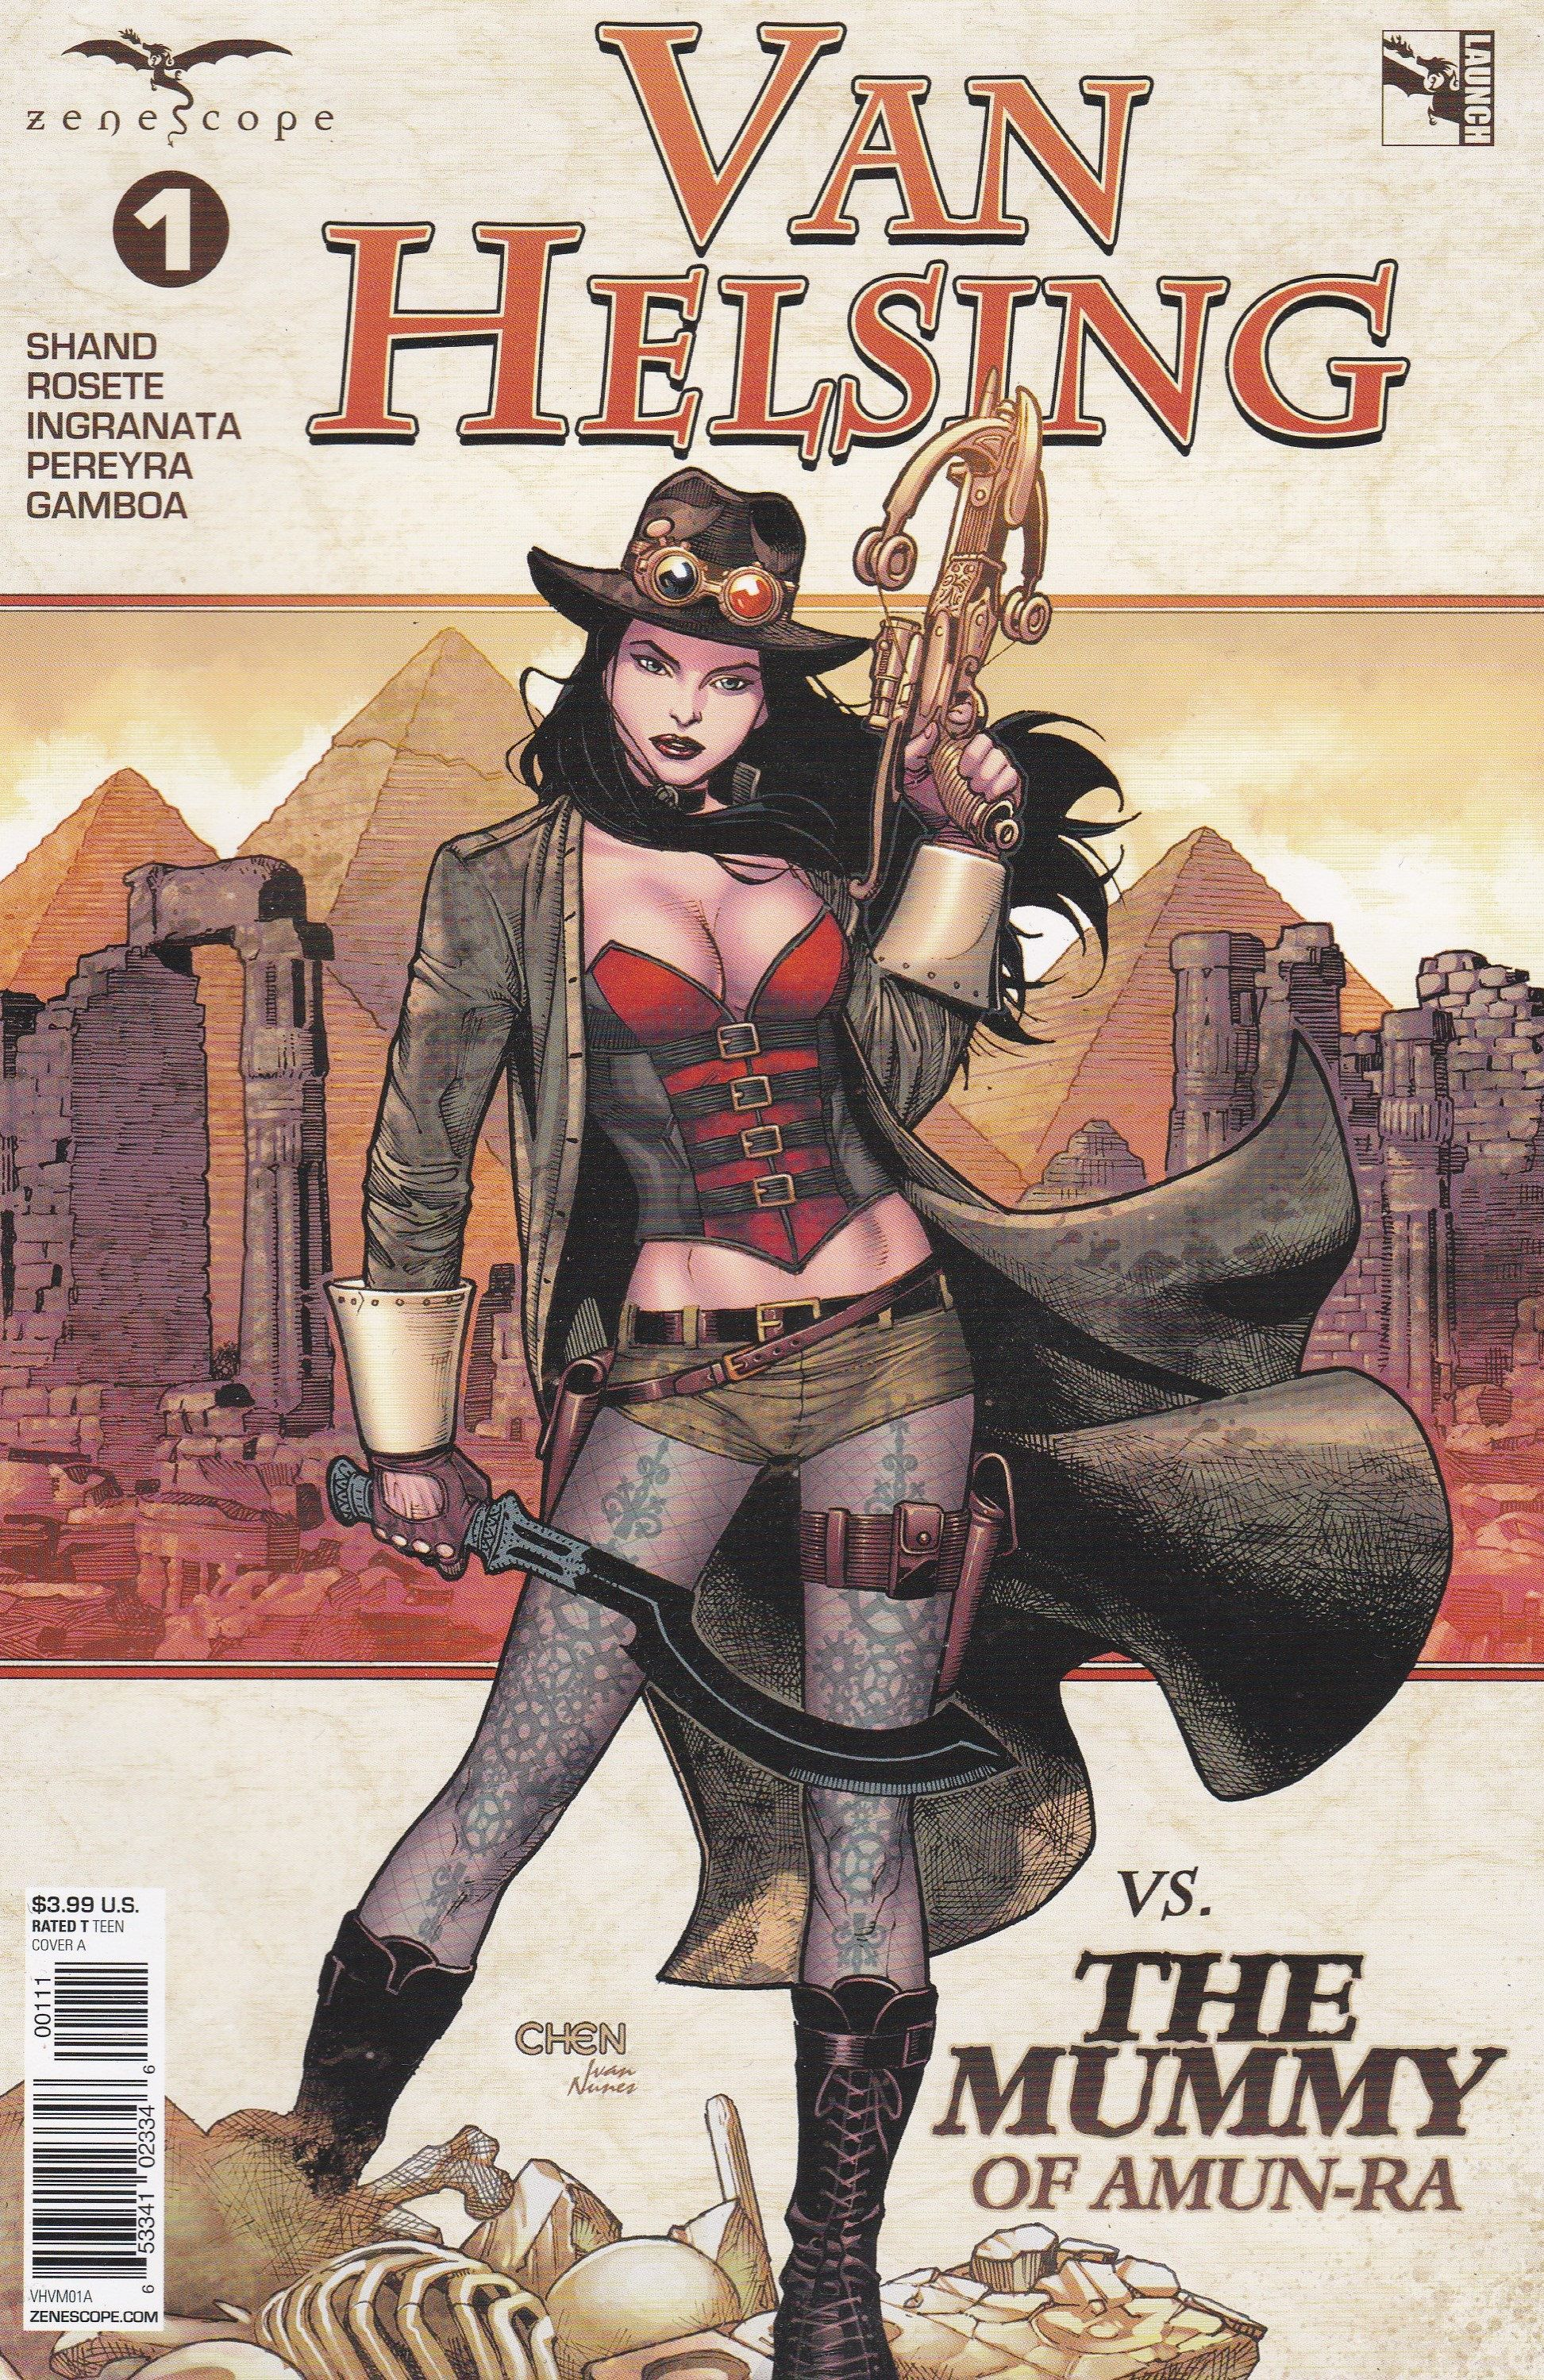 ~ Zenescope comic 1A cover Van Helsing Cover Gallery #1